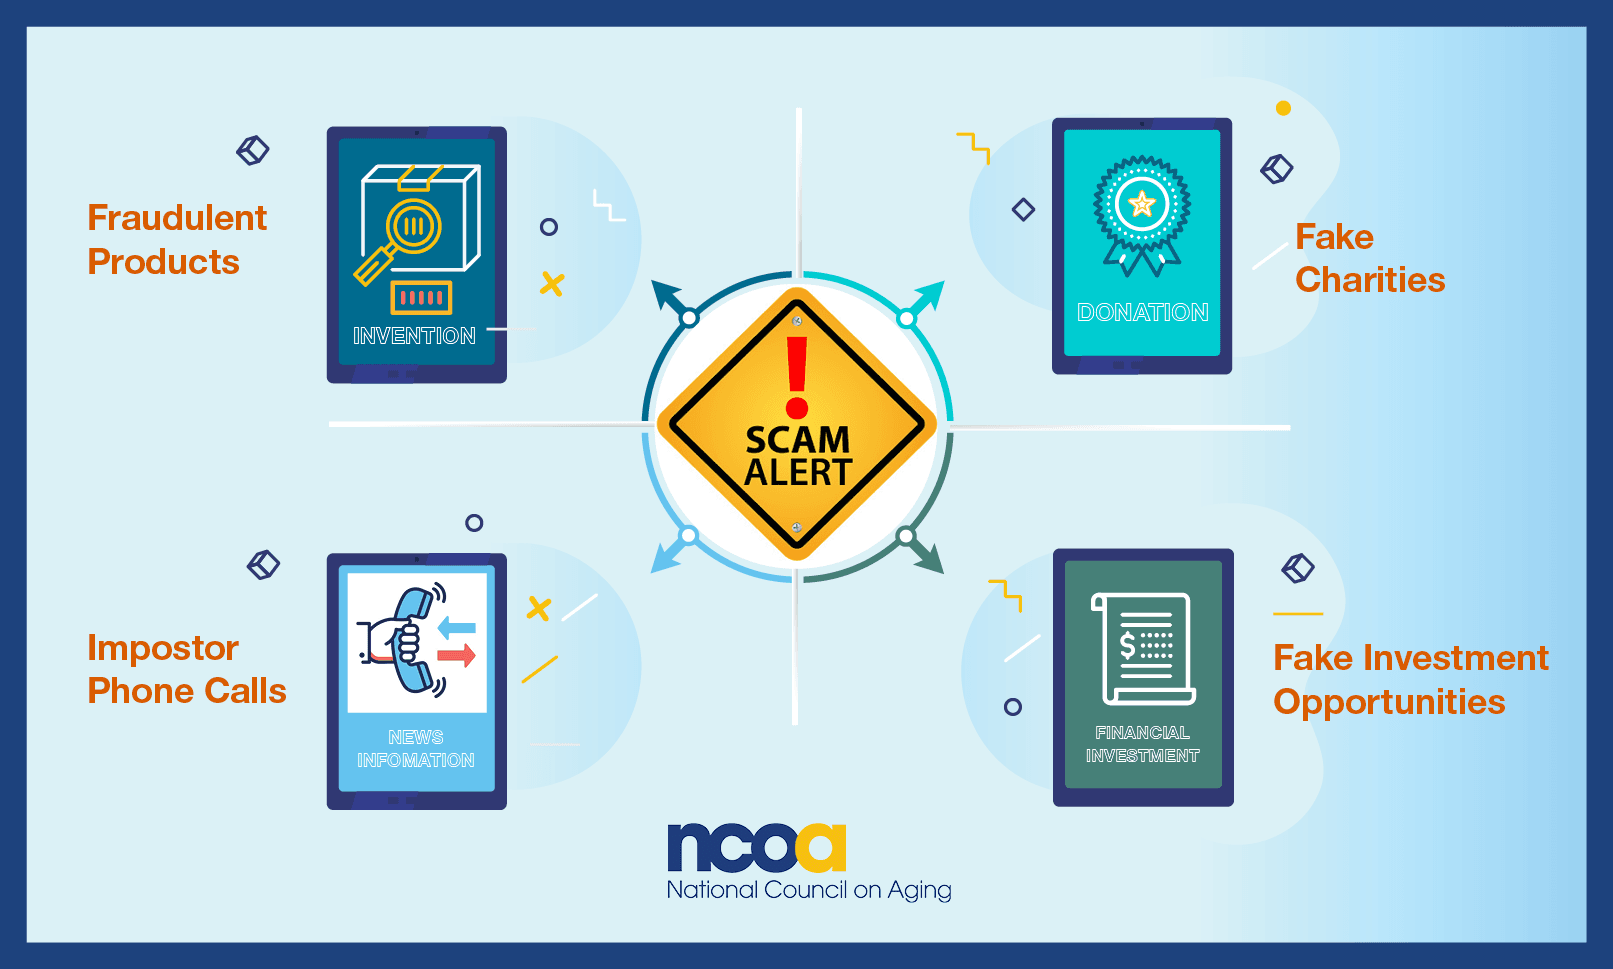 National Council on Aging scam alert graphic